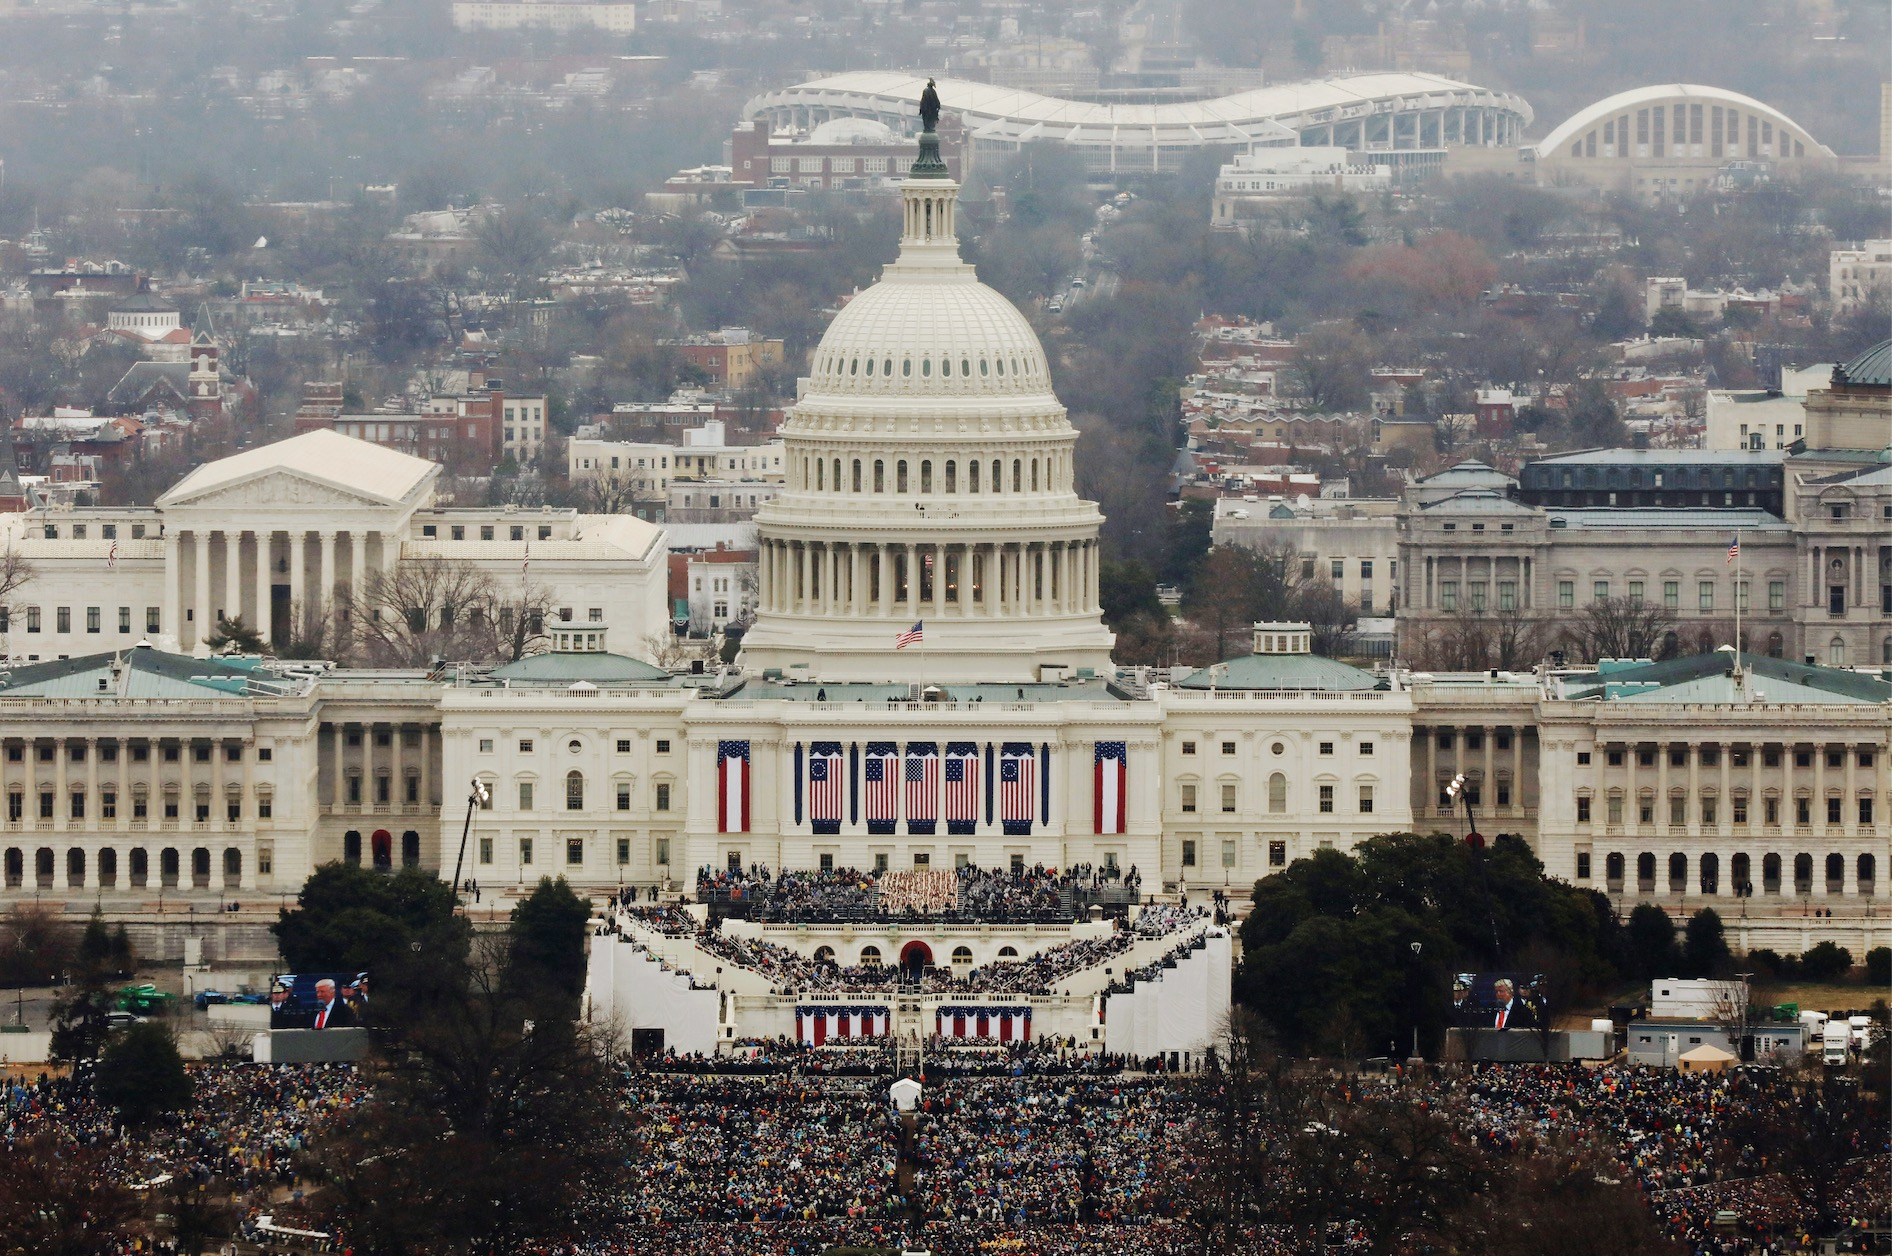 Trump Inauguration Lucas Jackson/Getty Images